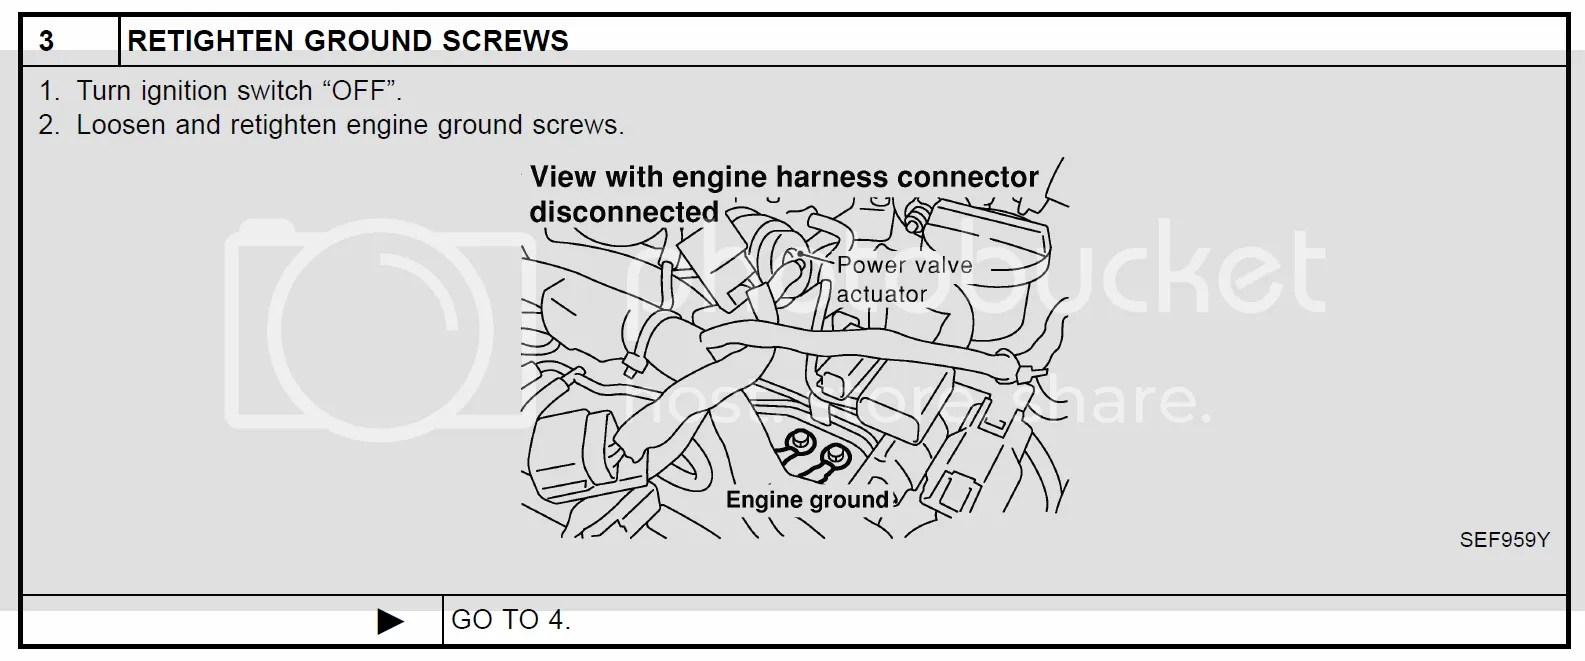 hight resolution of 2002 infiniti qx4 engine diagram wiring library 2002 chevrolet s10 engine diagram 2002 infiniti qx4 engine diagram